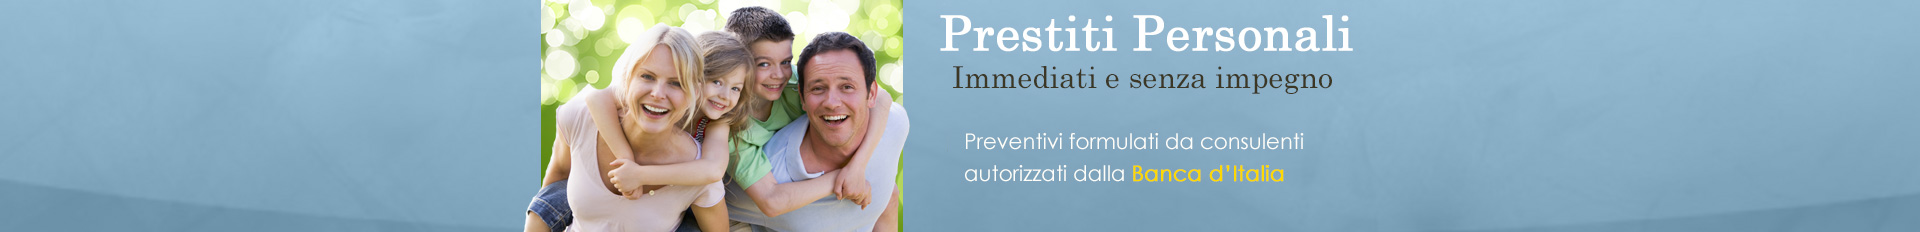 Prestiti-online-immediati